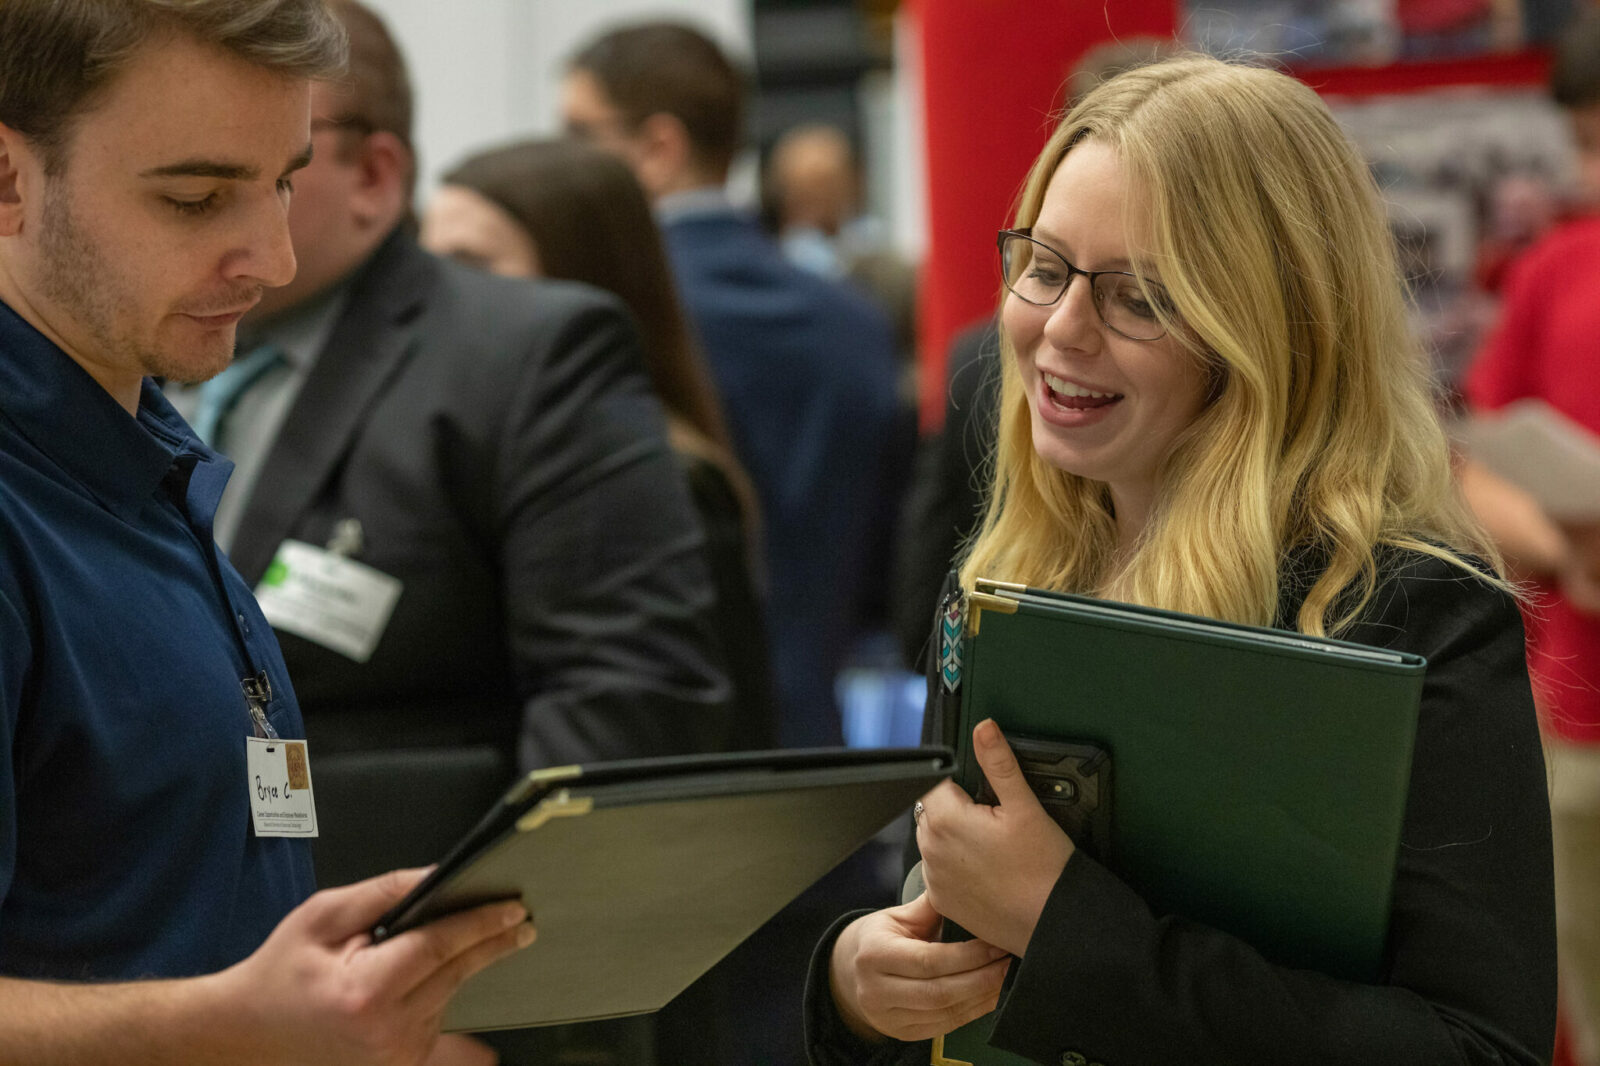 Missouri S&T's fall and spring career fairs attract employers from across the globe in search of talented students. Pictured: a scene from the February 2020 Career Fair. Photo by Tom Wagner/Missouri S&T.